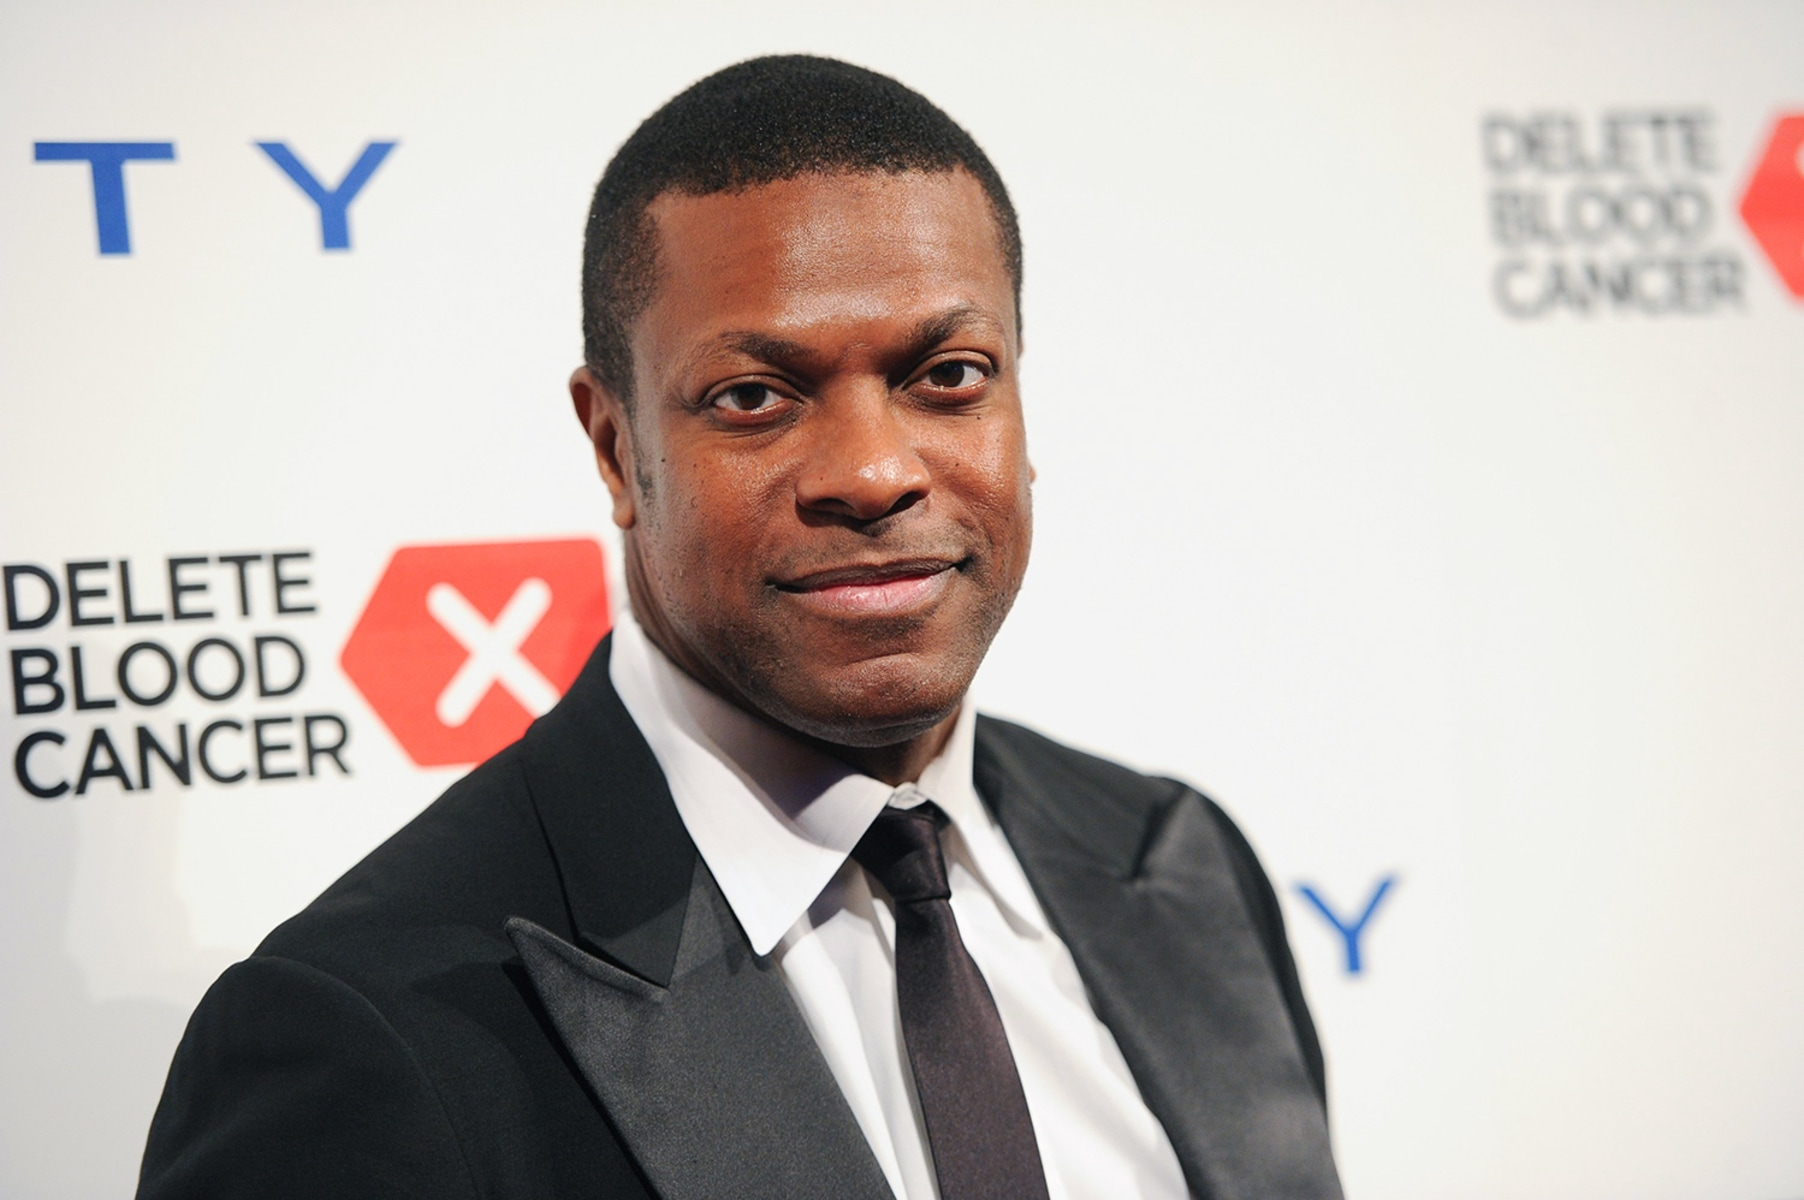 Image: Chris Tucker